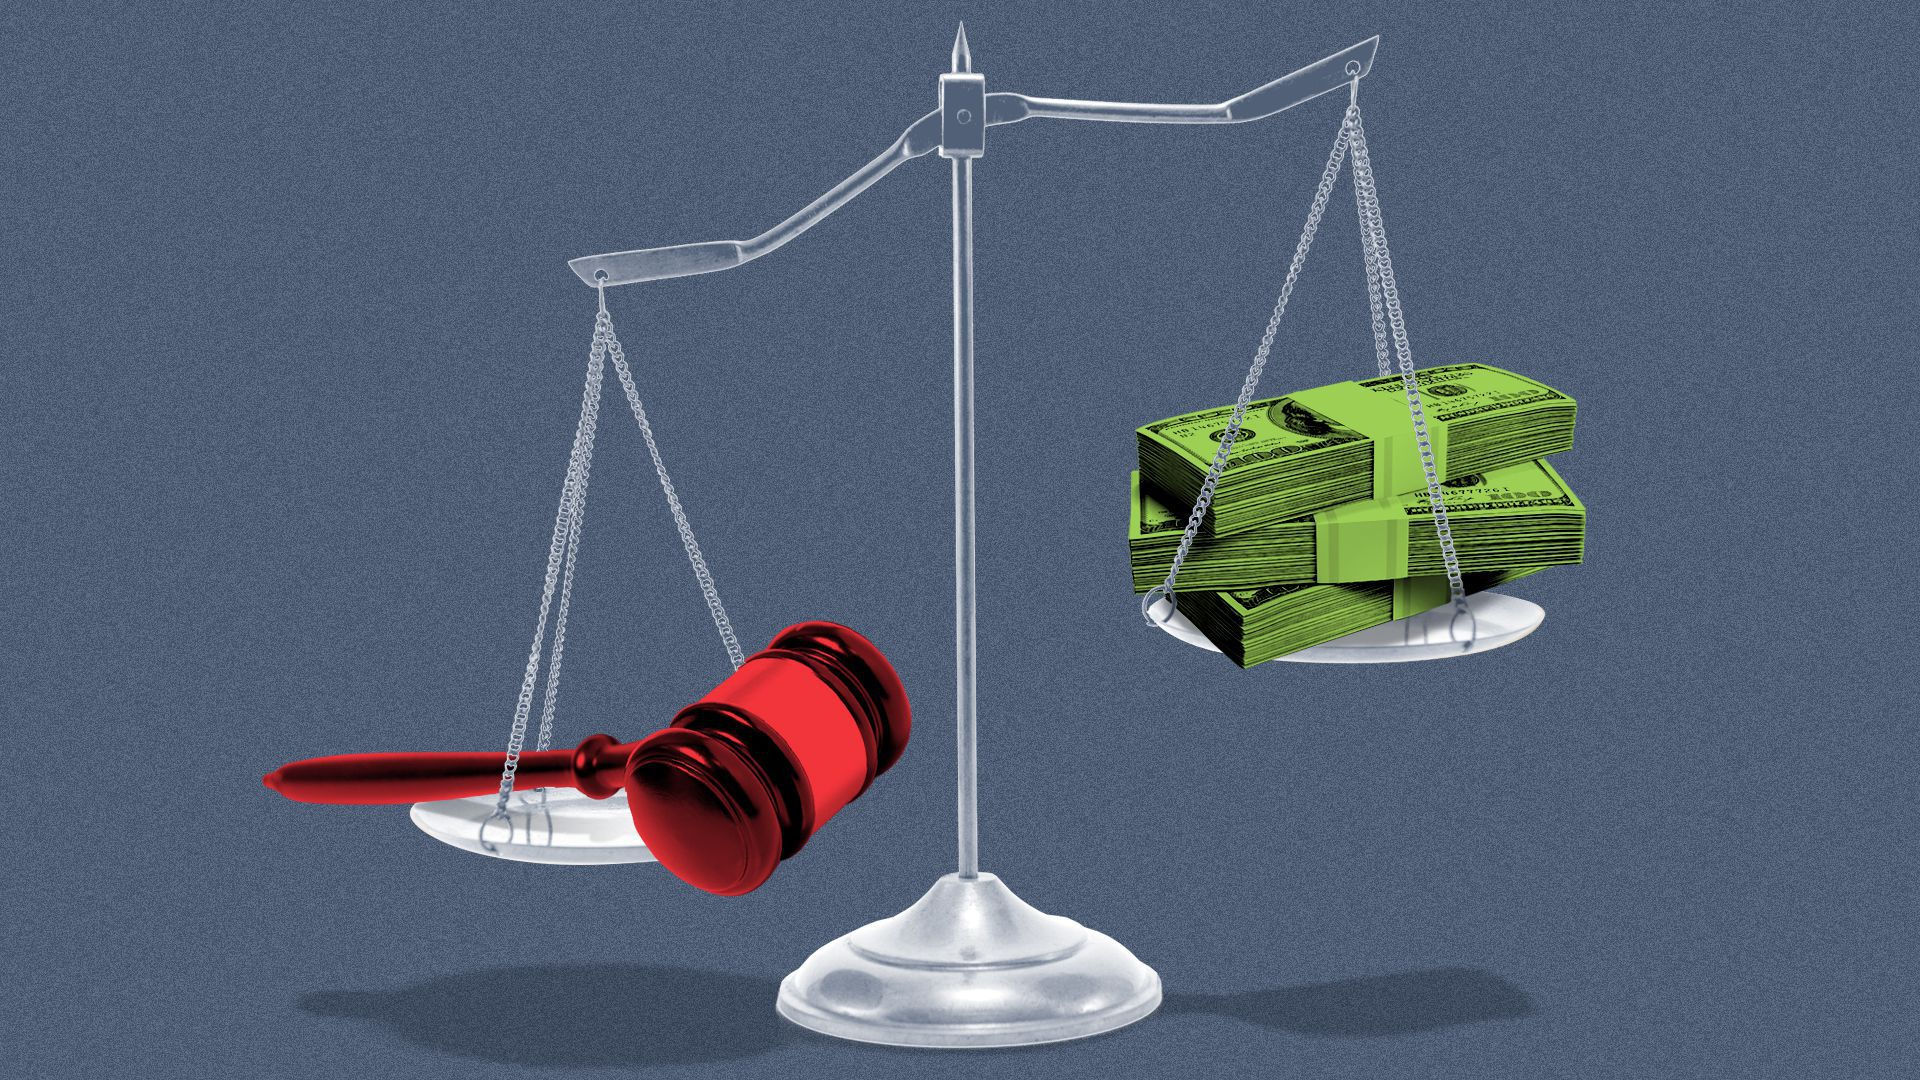 Illustration of the scales of justice with a gavel on one side and stacks of cash on the other.